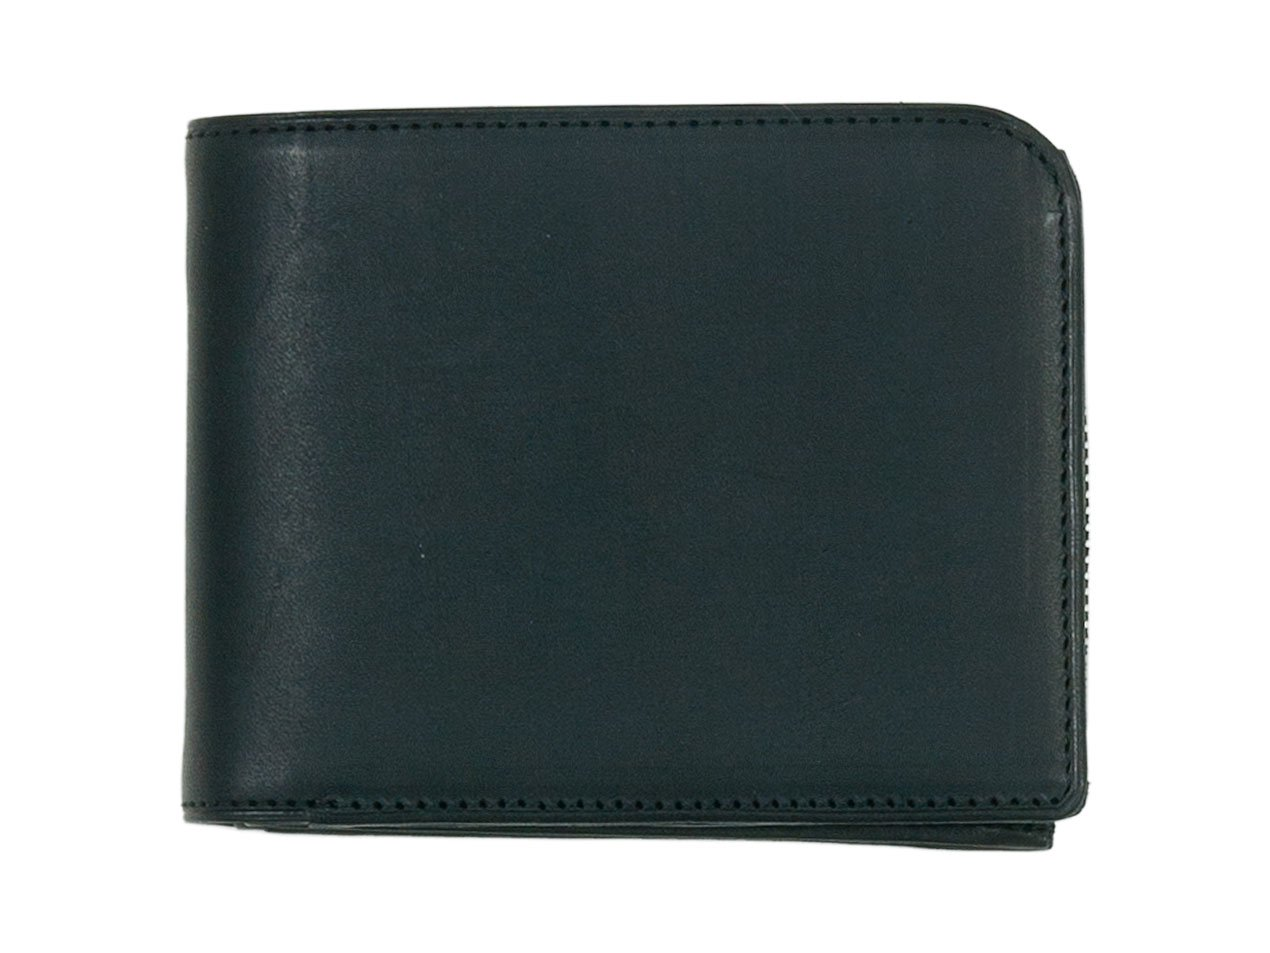 MARGARET HOWELL x PORTER OIL LEATHER FOLDED WALLET 010BLACK